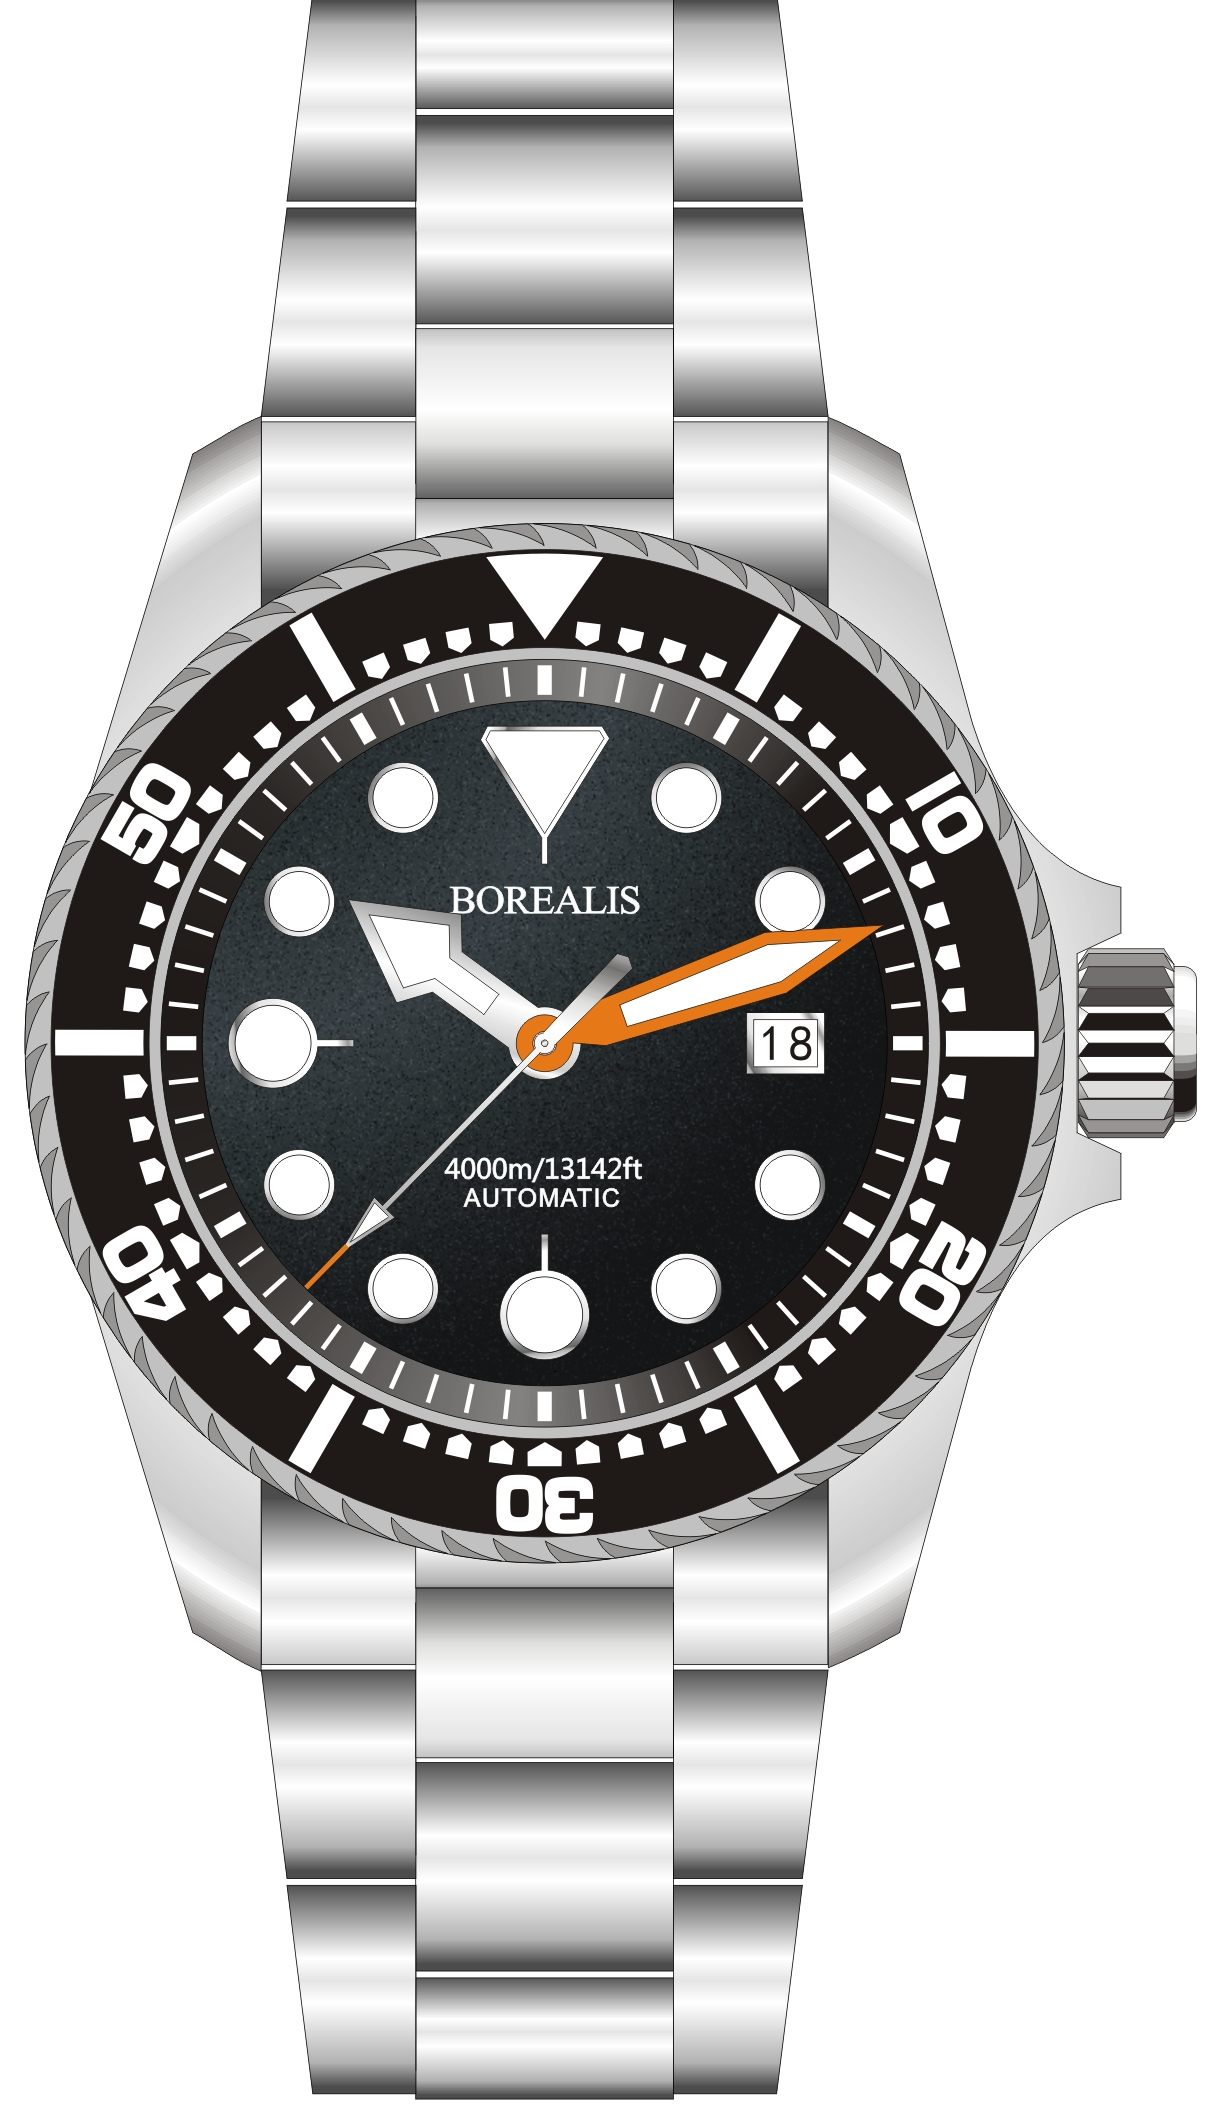 Borealis Seafarer II Stainless Steel Black BGW9 Sapphire Turbine Style Grip Bezel 4000m Miyota 9015 Automatic Diver Watch BSFIIBLACKBGW9